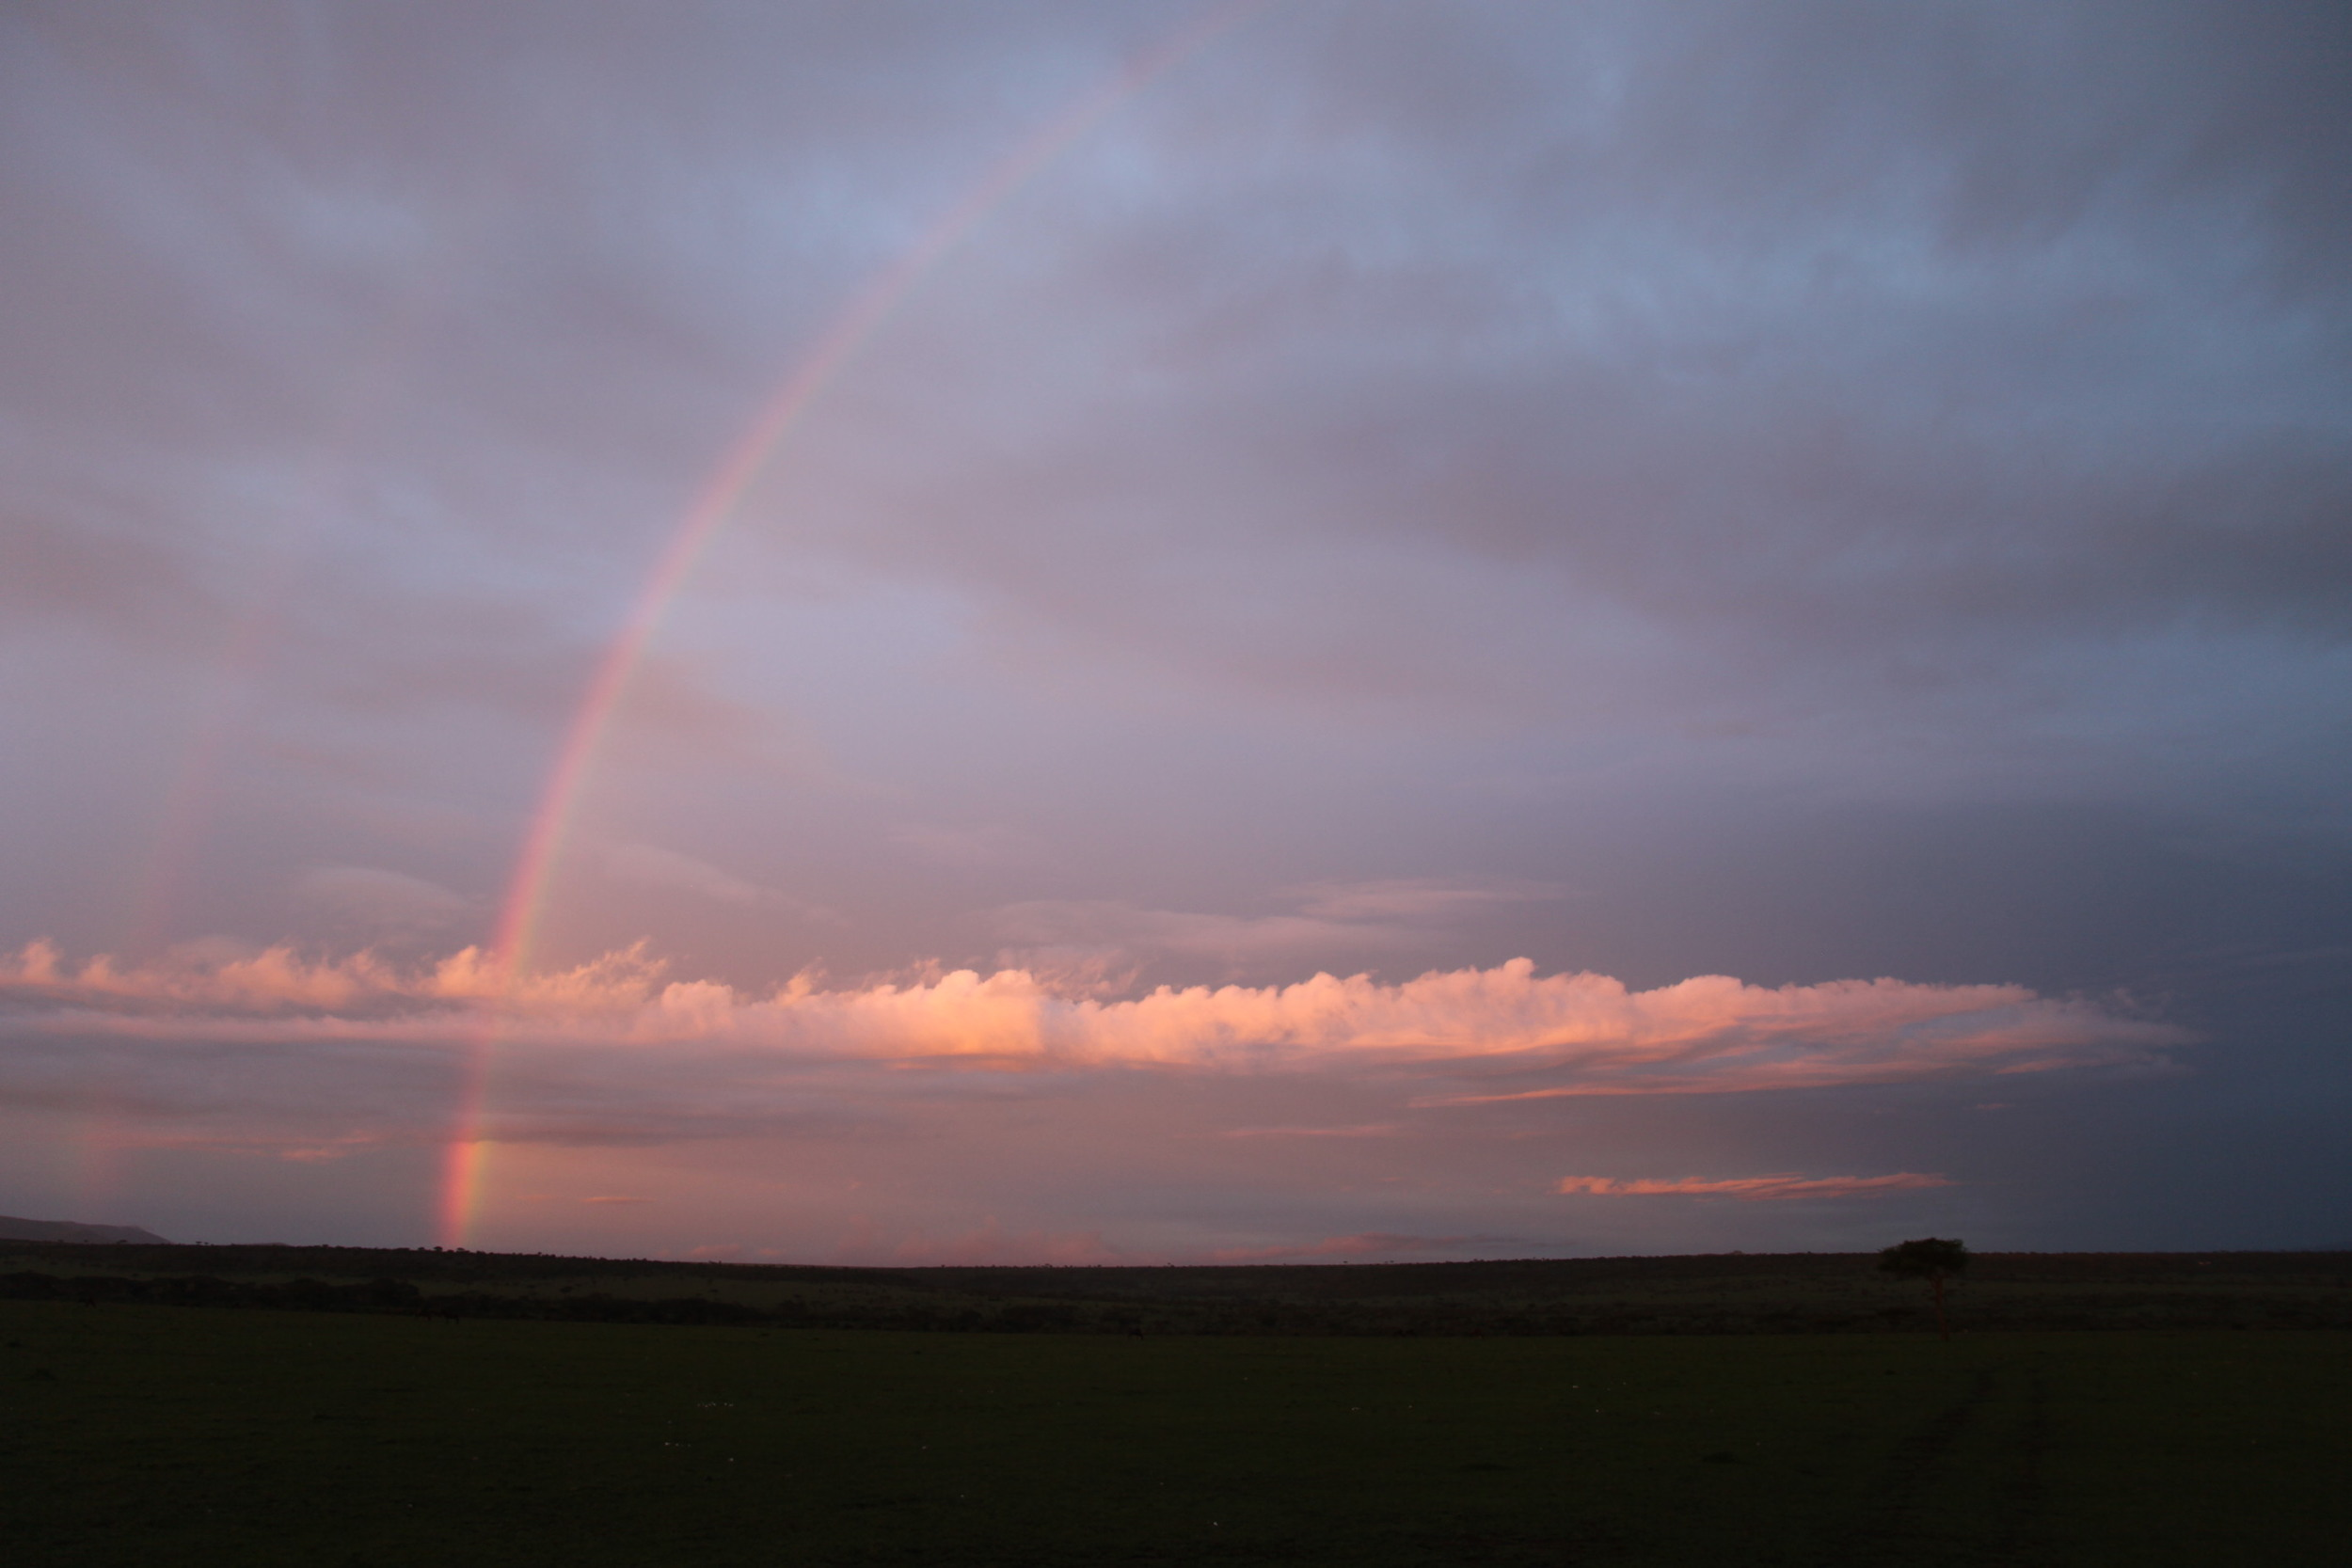 Parallel rainbows after the rainfall.